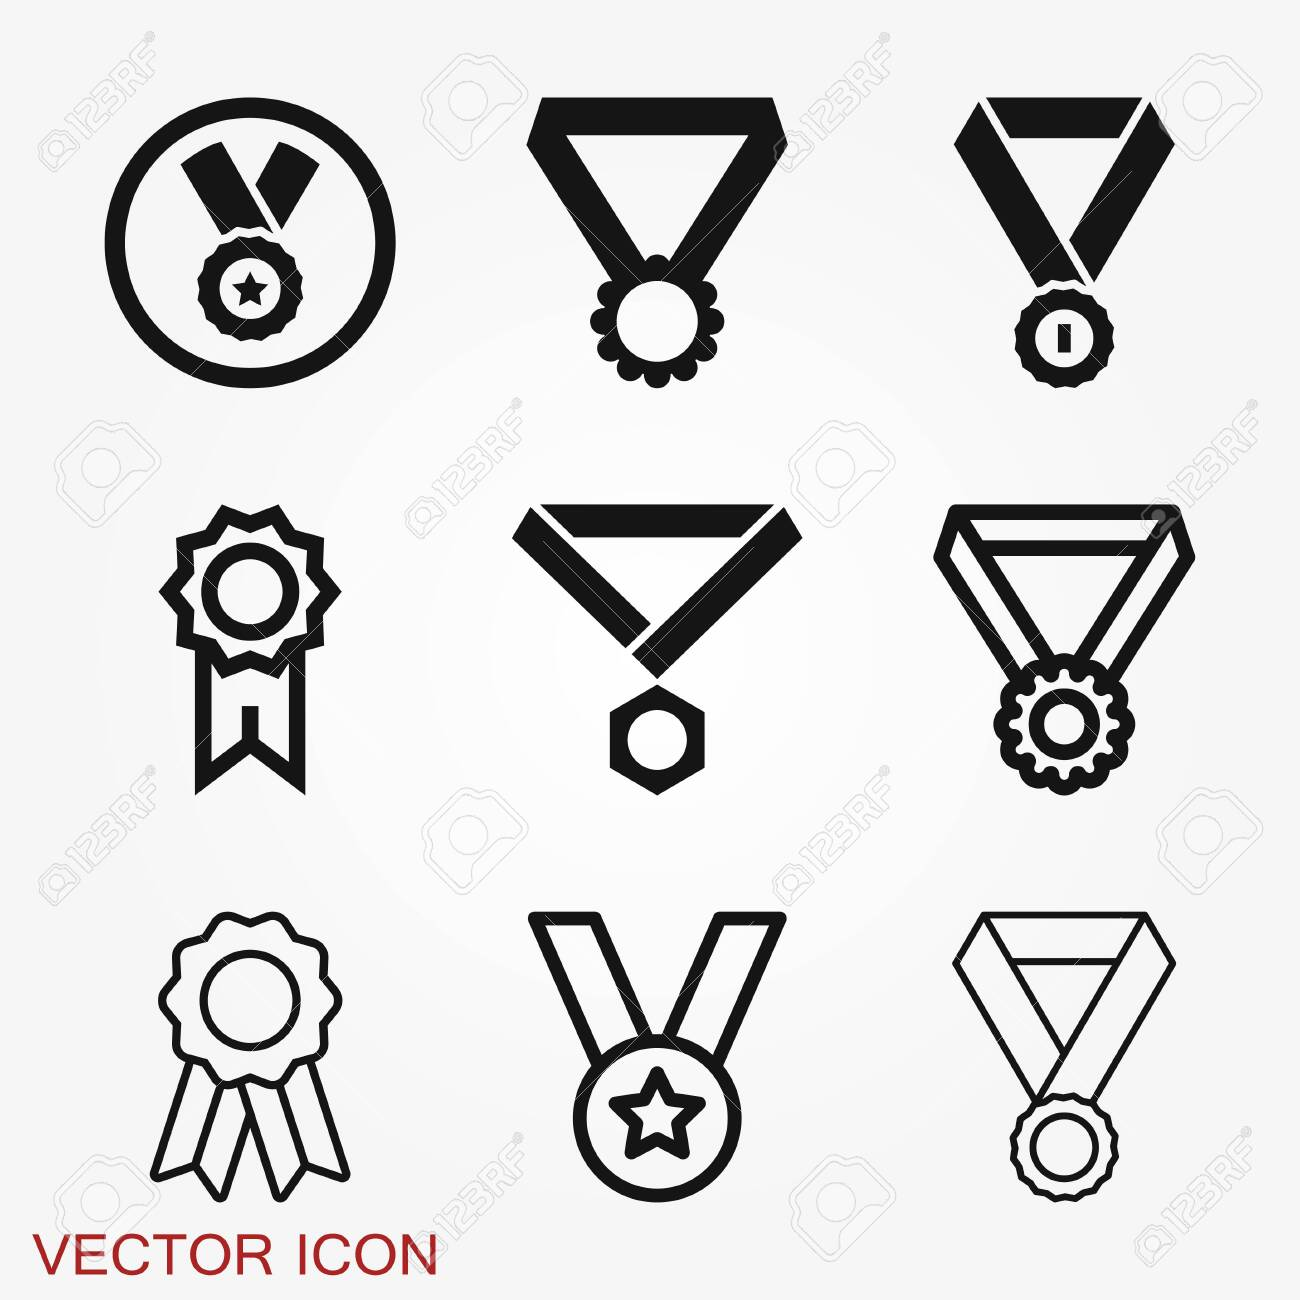 Medal icon isolated on background. Vector illustration. Flat design. - 141870527